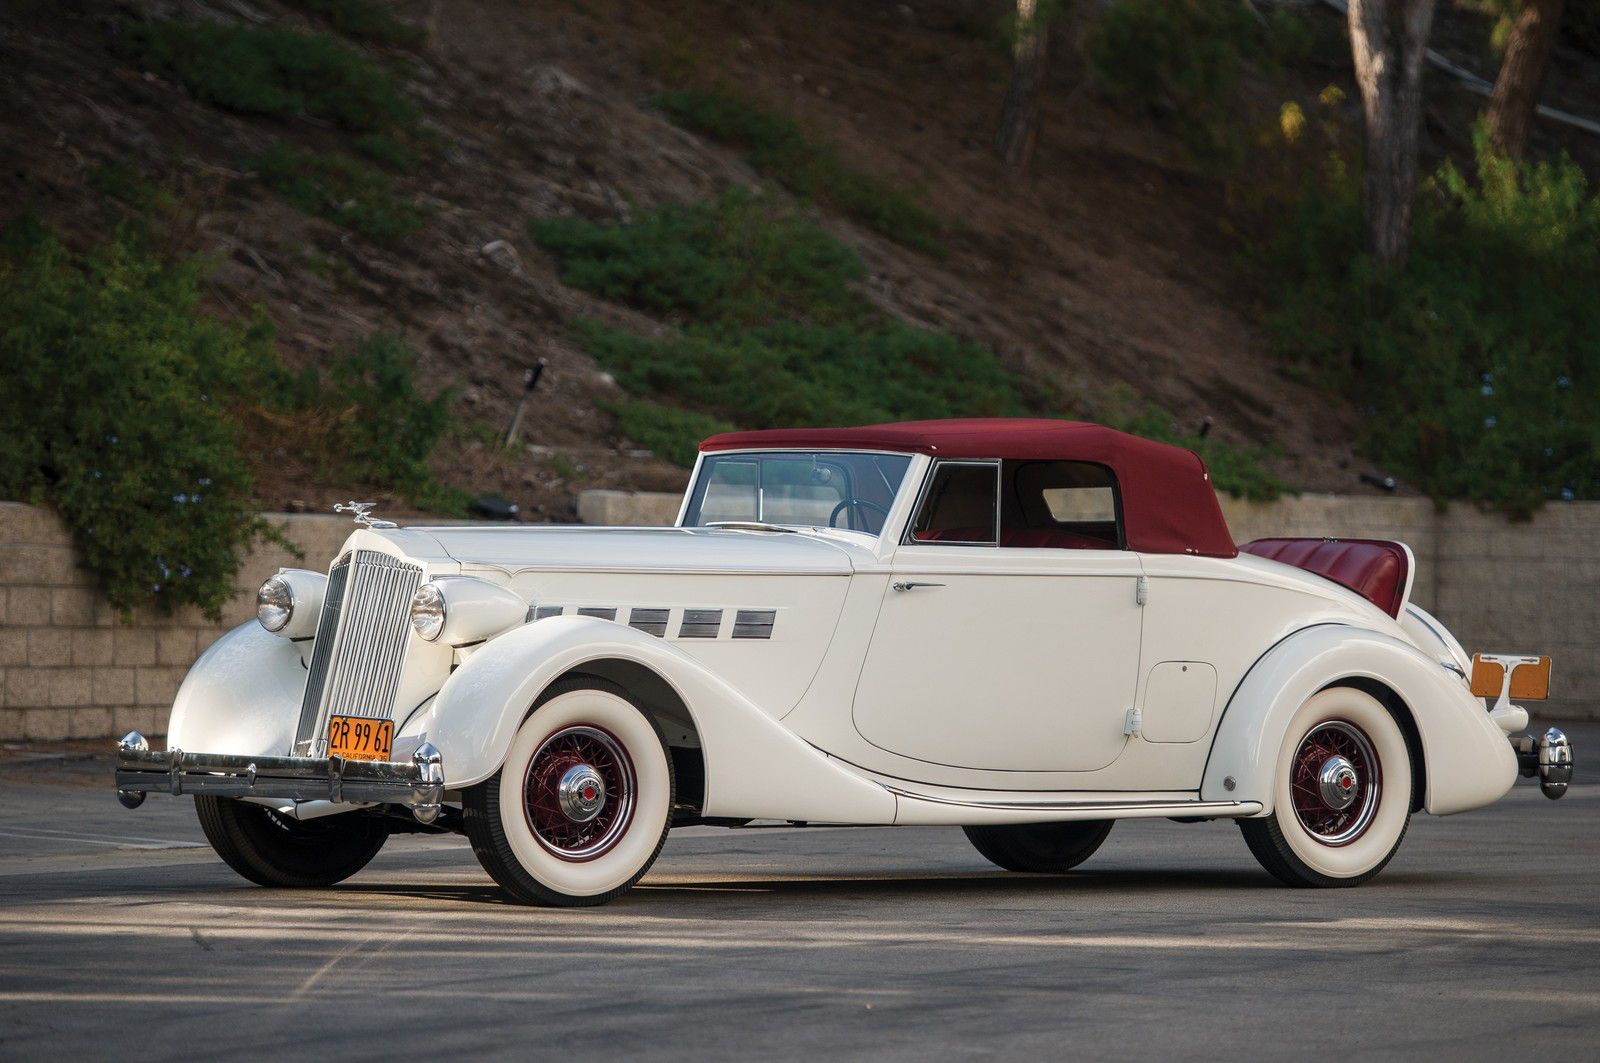 VOITURES DE LEGENDE (1246) : PACKARD SUPER EIGHT COUPE ROADSTER - 1936